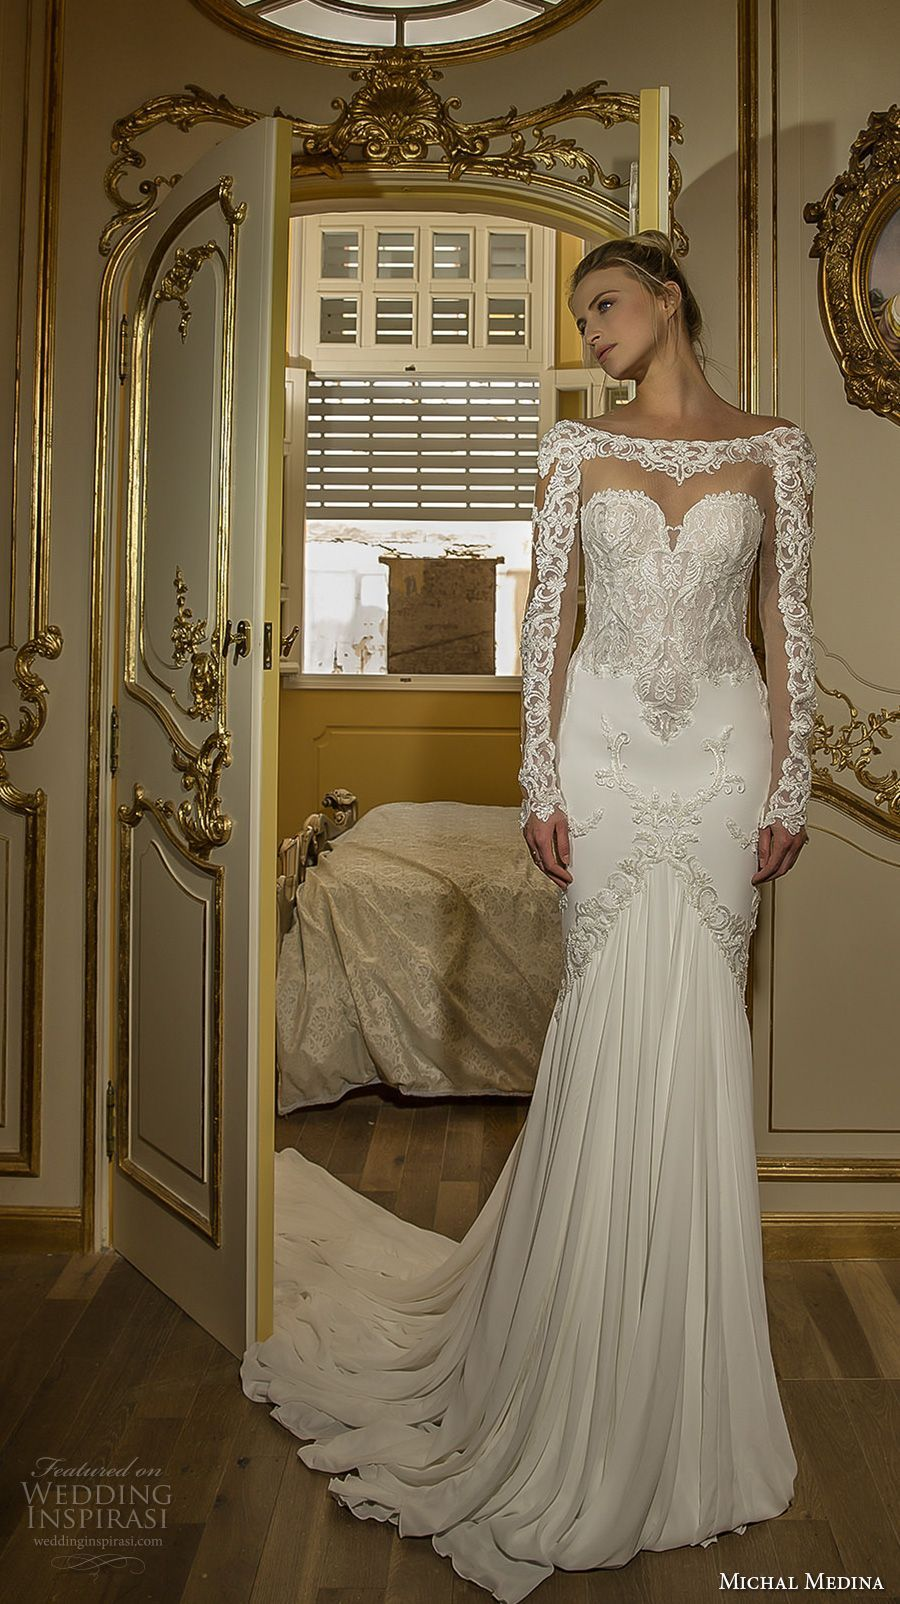 Lace fit and flare wedding dress with sleeves  michal medina  bridal long sleeves illusion beateau sweetheart